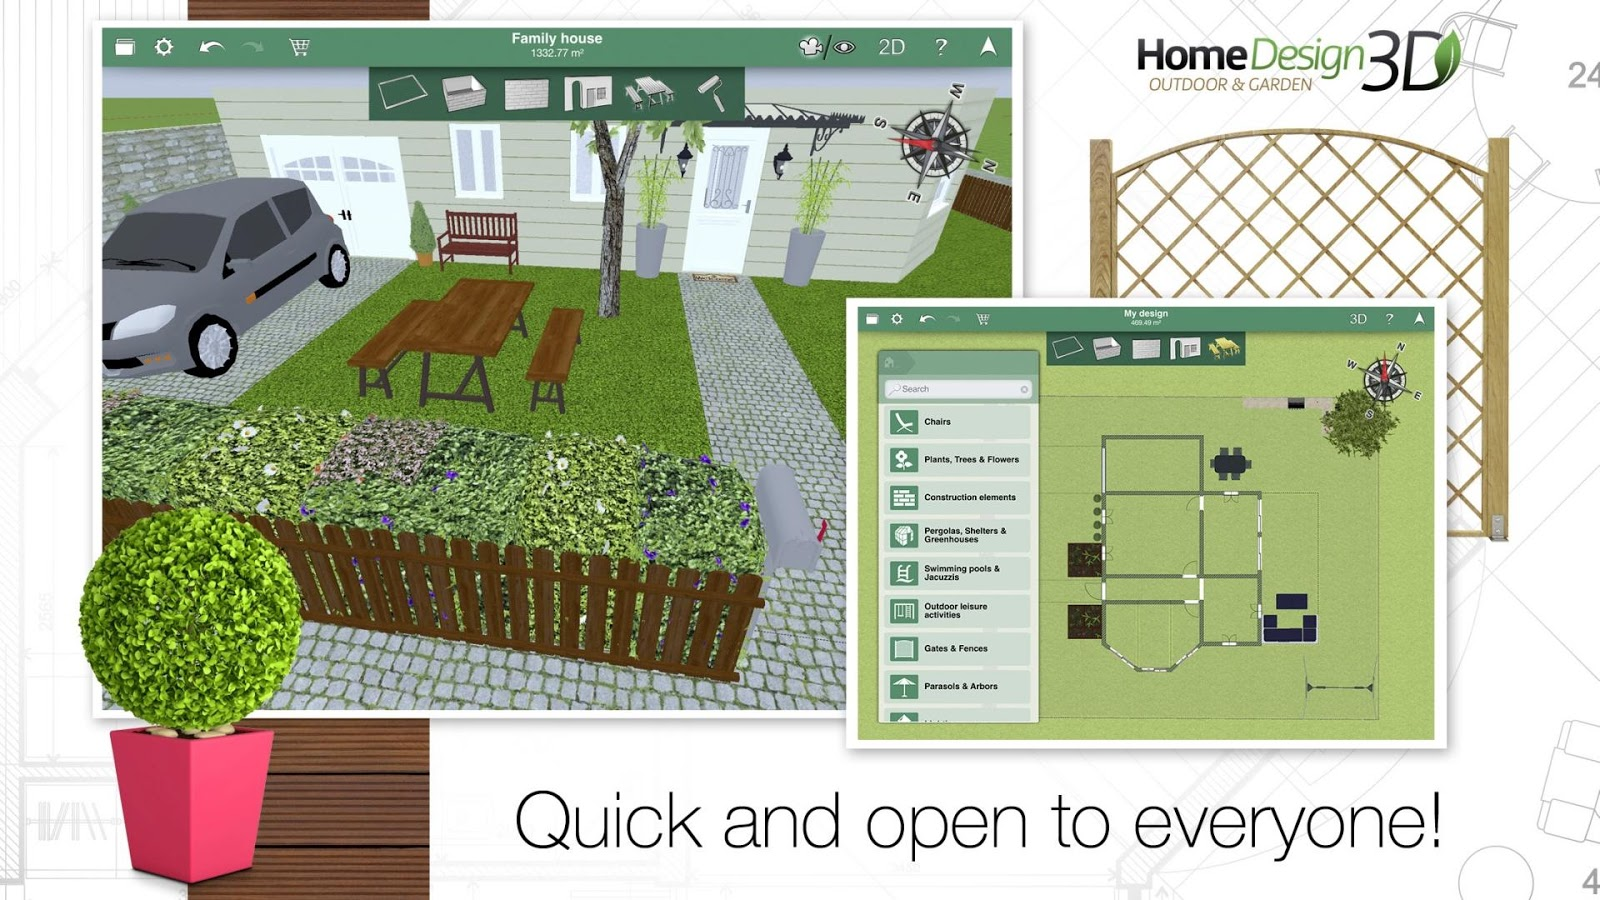 Backyard Design App For Ipad: Home Design 3D Outdoor/Garden Slides Into The Play Store